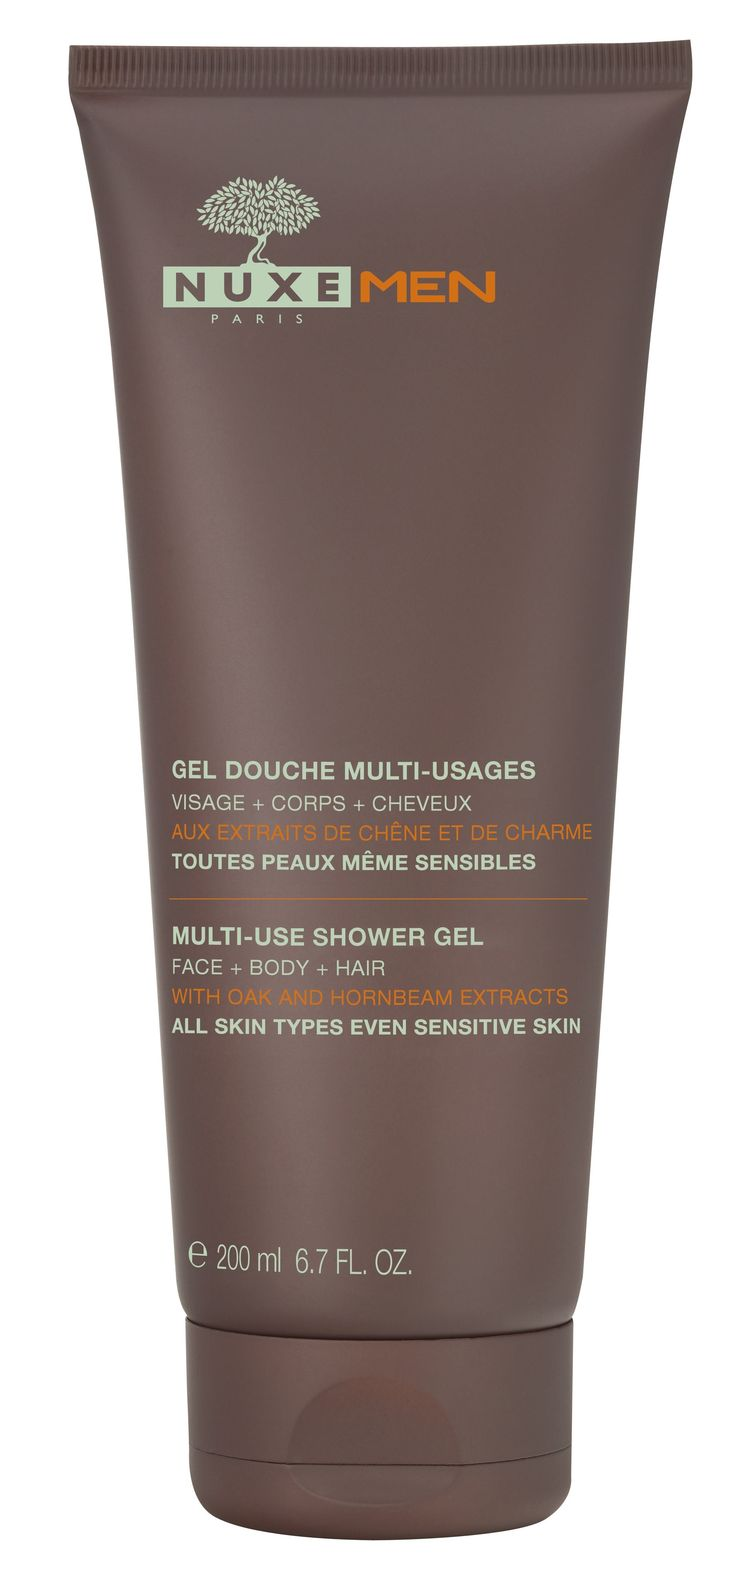 Nuxe Men Gel Douche Multi-usages 200ml - Pharmacie Lafayette - Provisoire